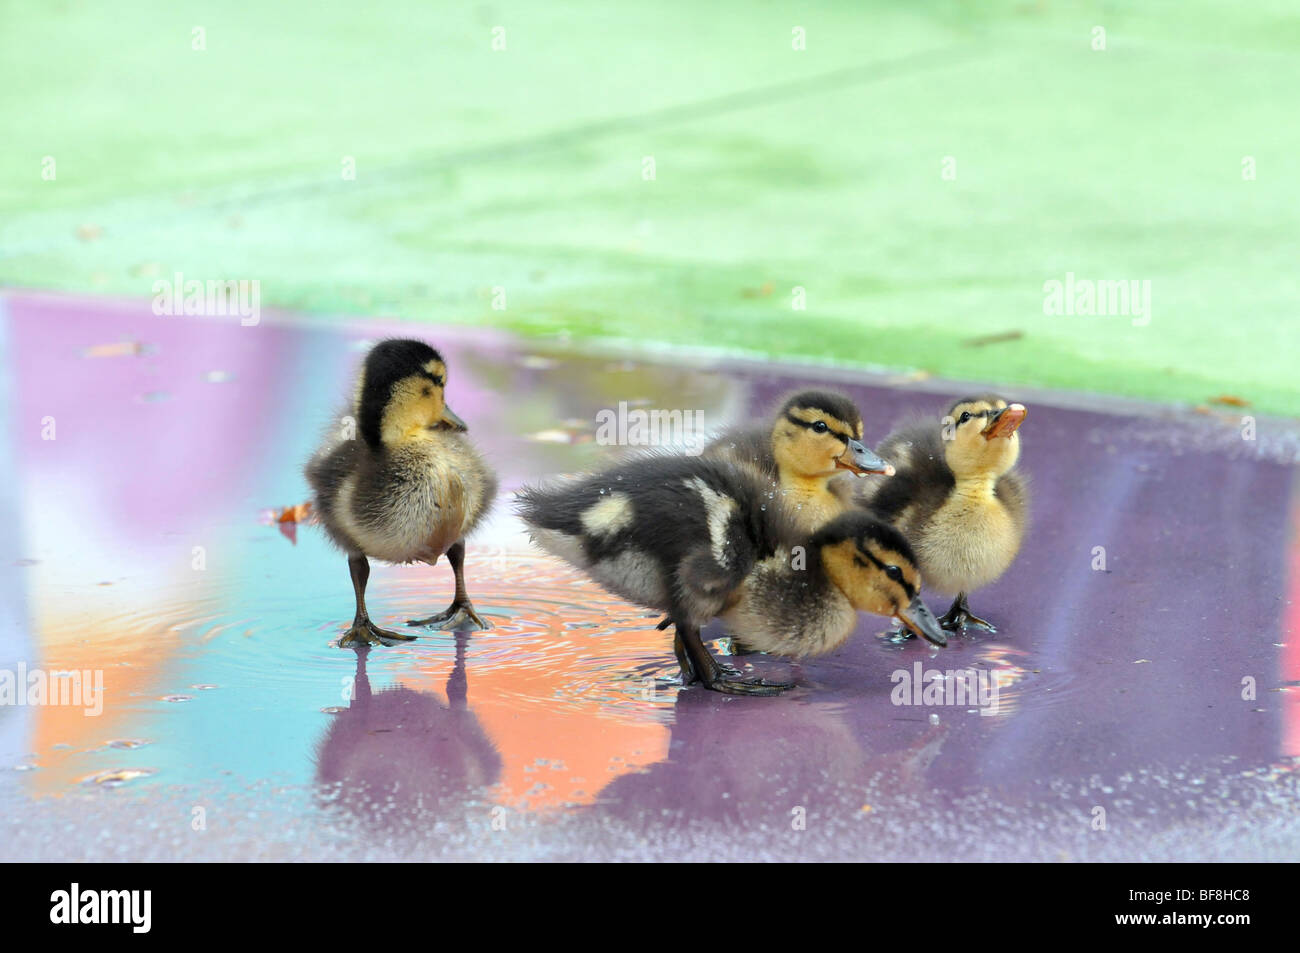 Group of Mallard ducklings with colorful water reflections - Stock Image